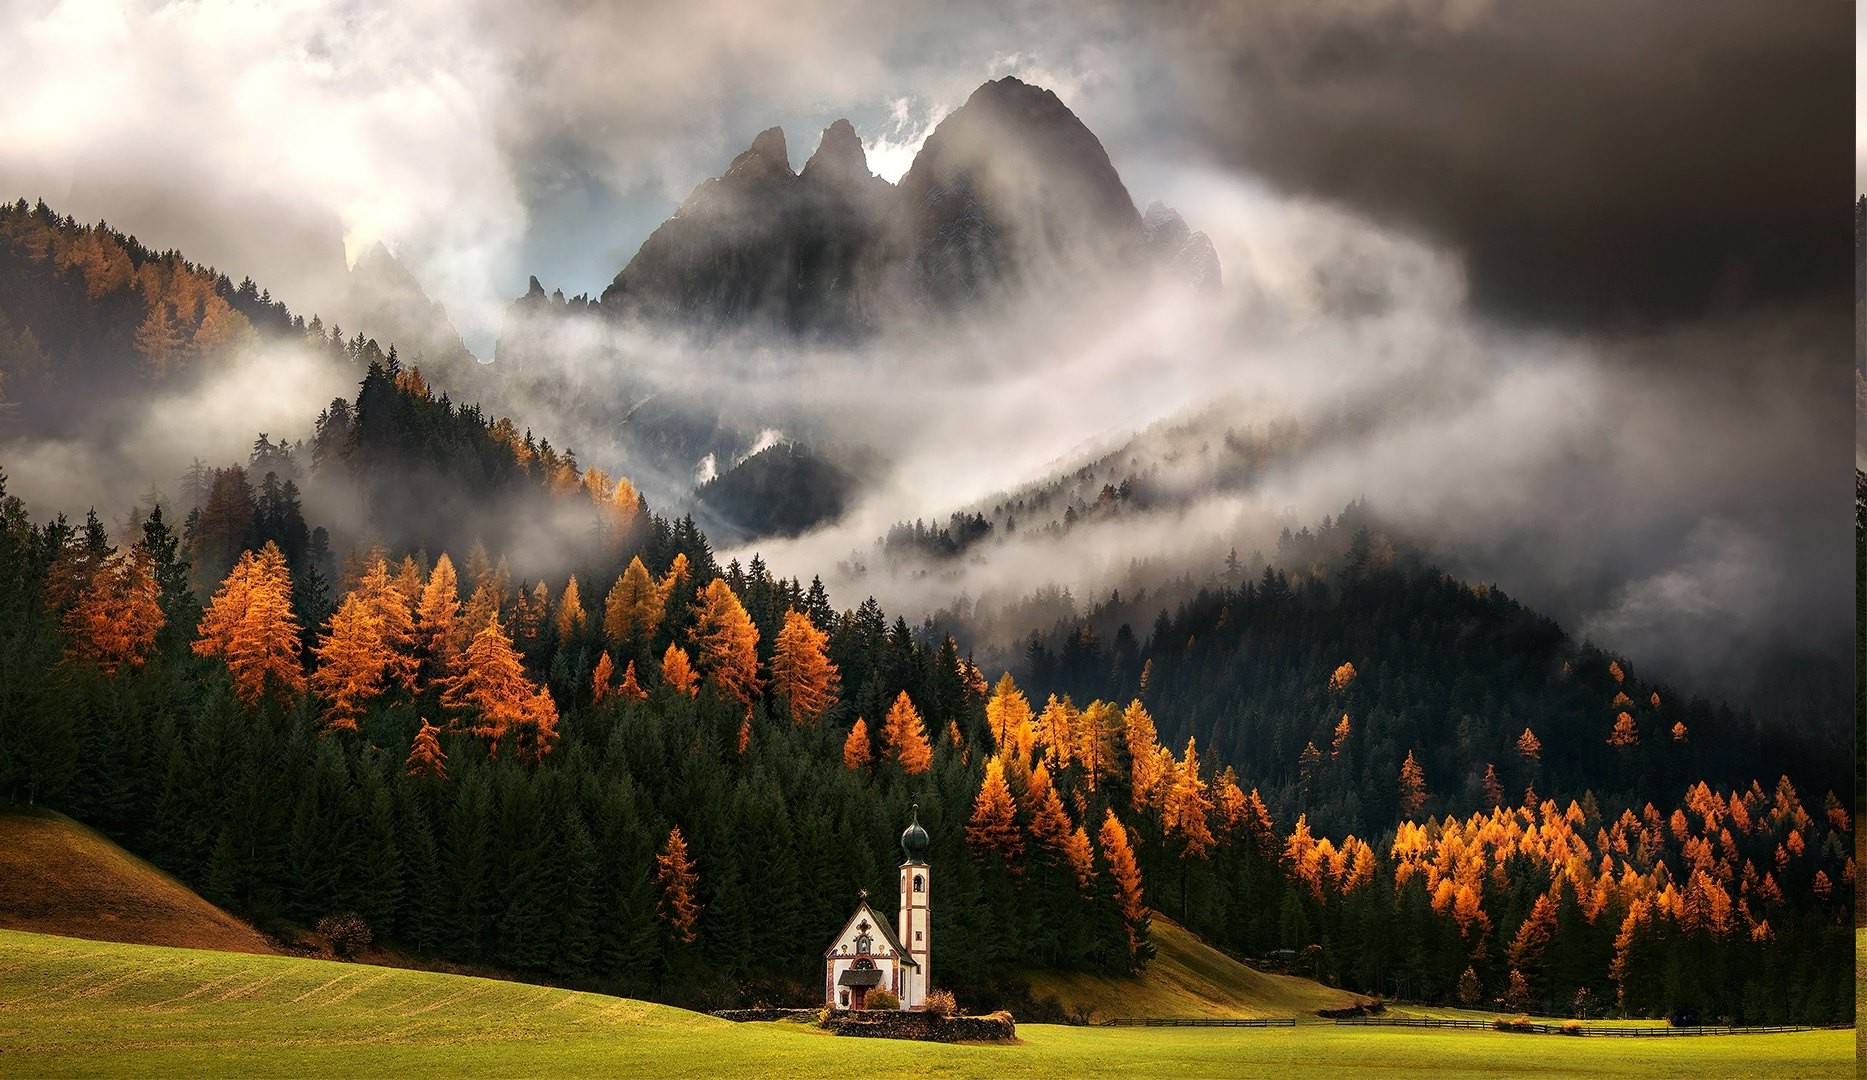 Fall Wallpaper Hd 1920x1080 Nature Landscape Mountain Forest Italy Fall